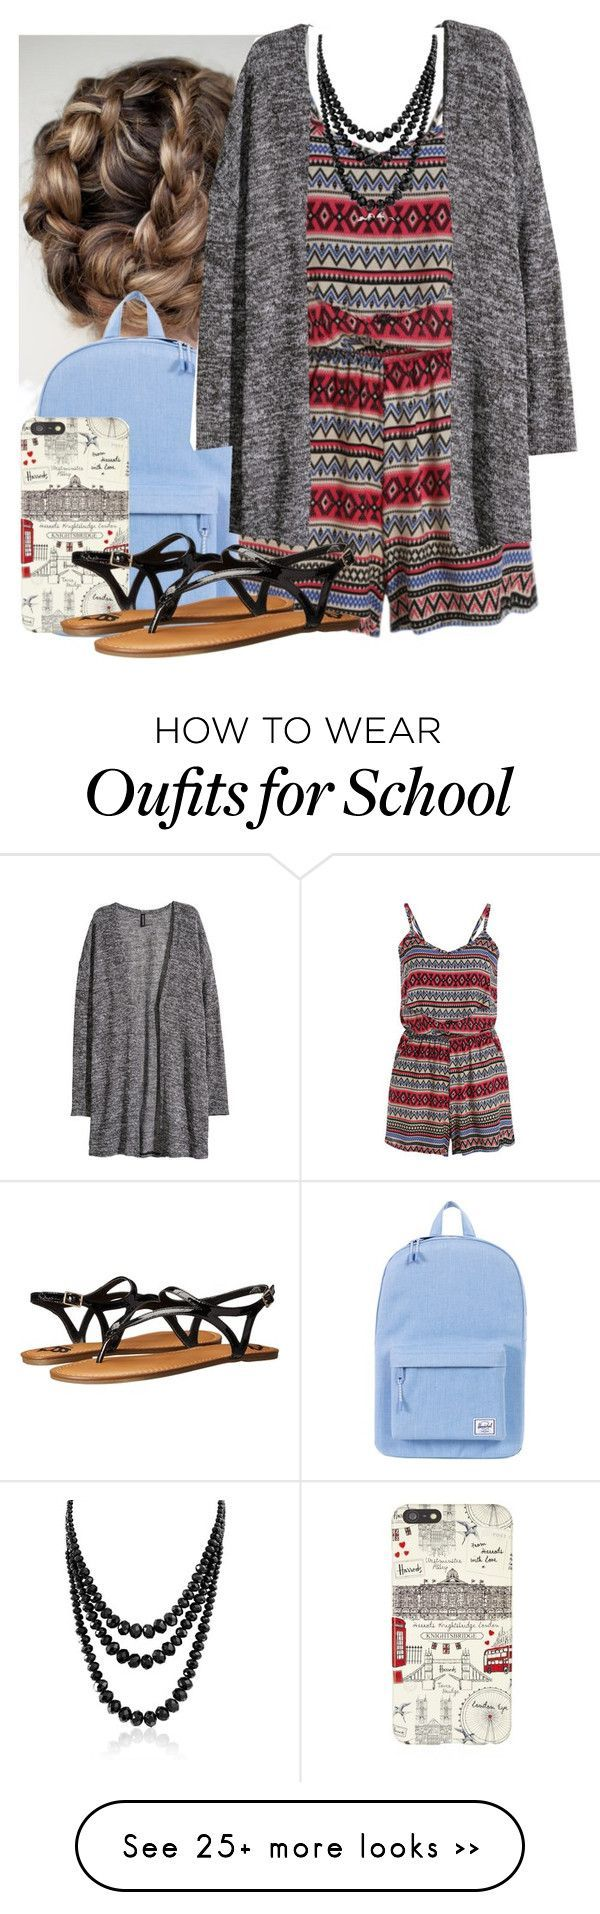 """""""School"""" by free-hugs-for-everyone on Polyvore featuring Herschel Supply Co., Harrods, H&M, Fergalicious and Bling Jewelry"""